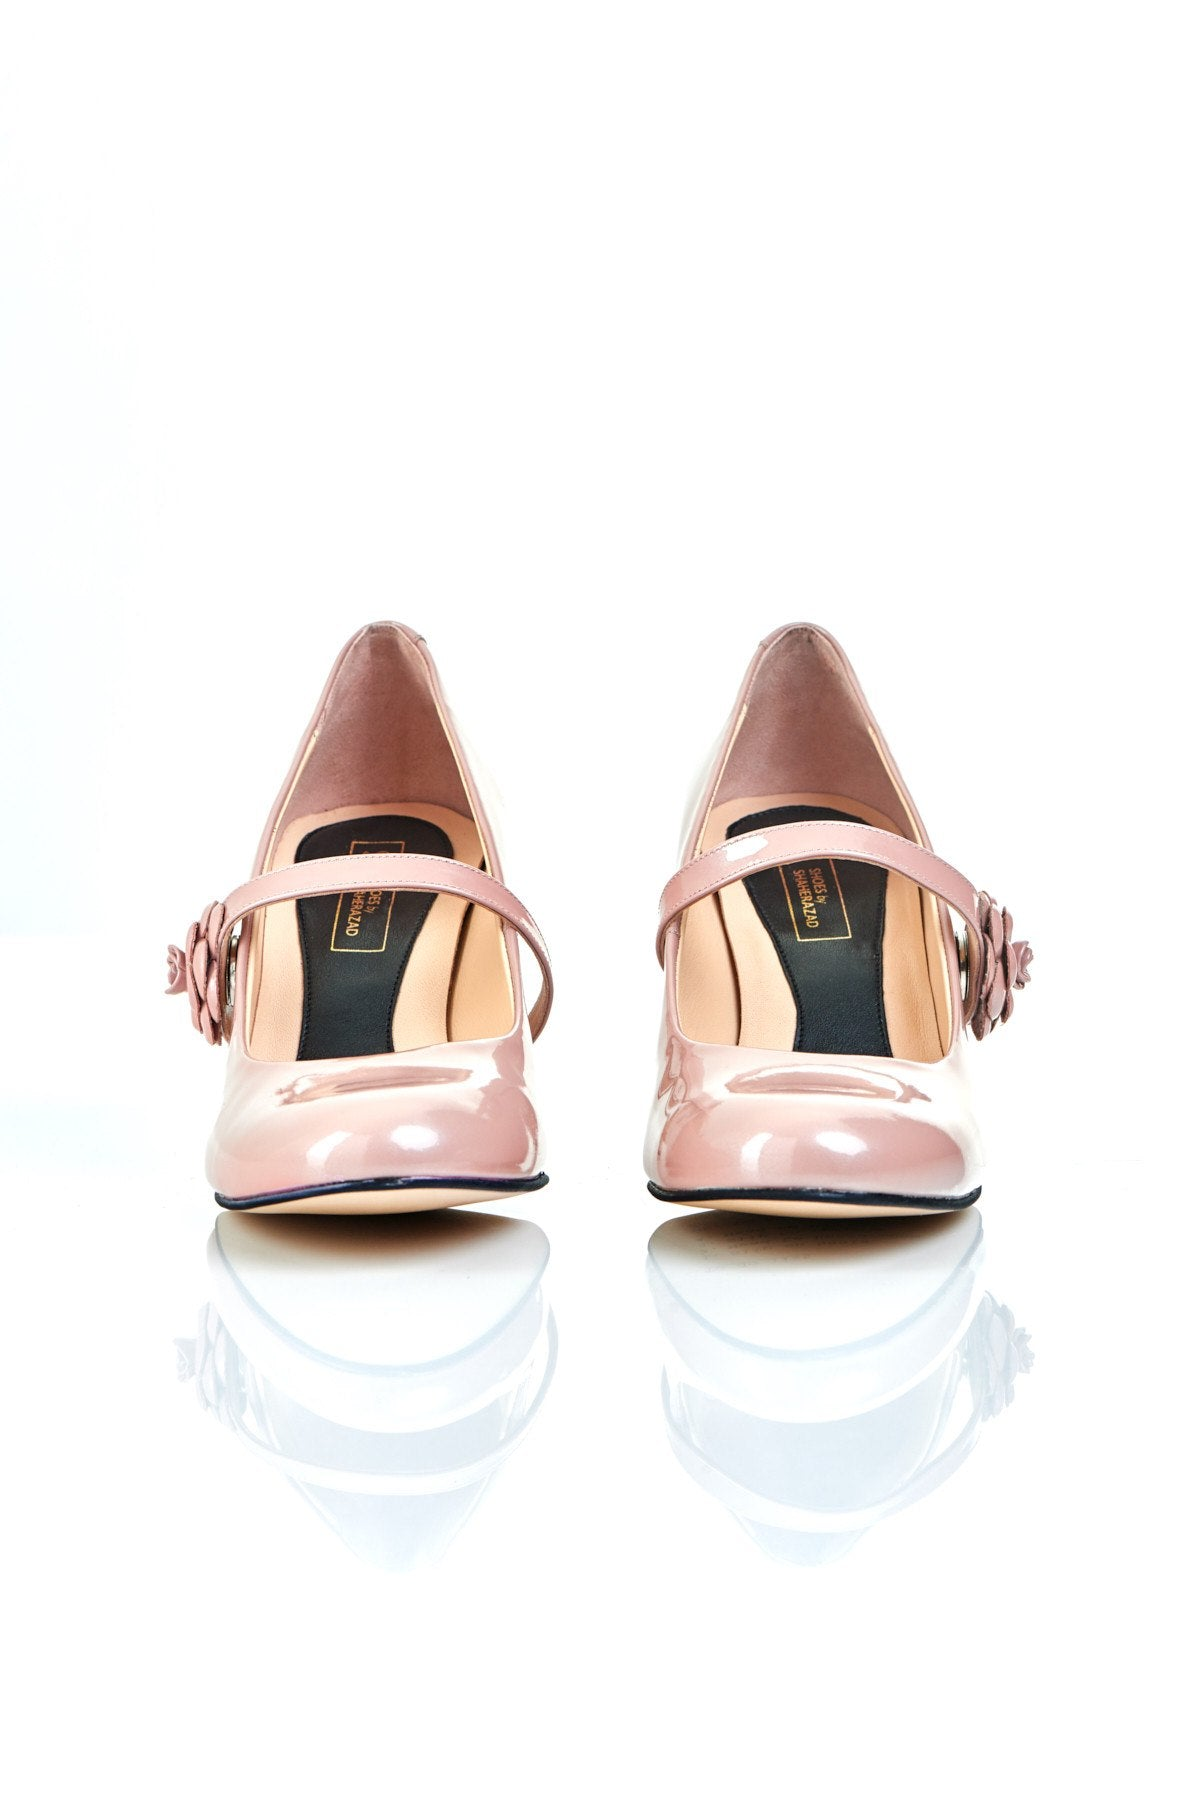 Don't Wait Up - Shoes - Shoes by Shaherazad